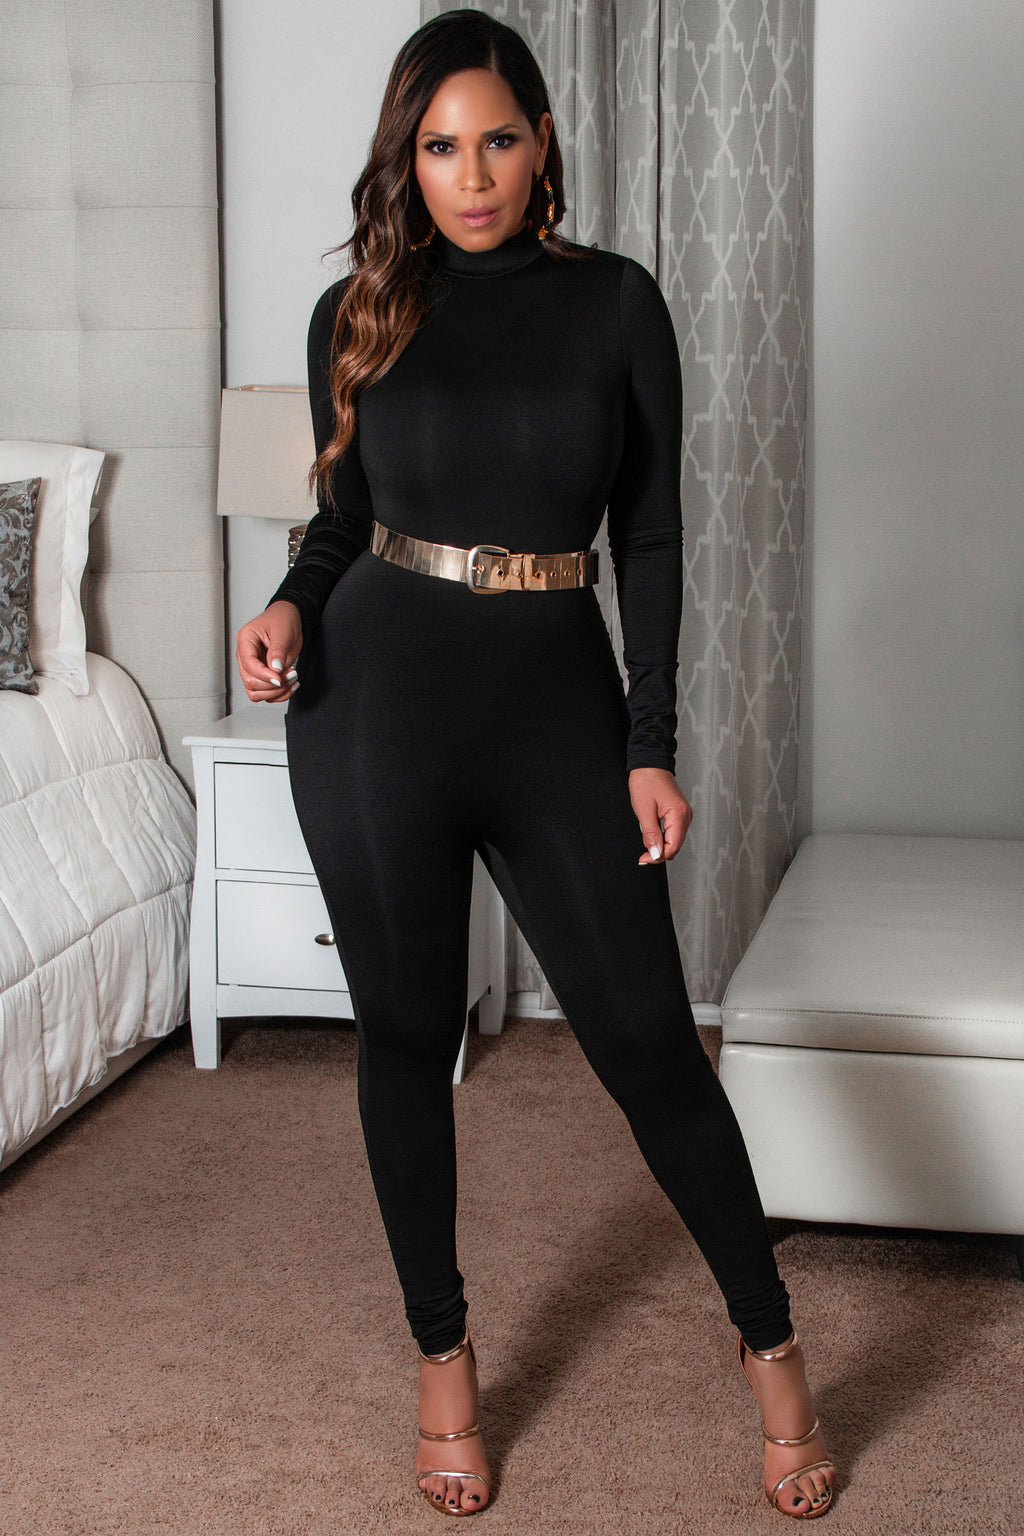 Sophie High Neck Long Sleeve Bodysuit Jumpsuit